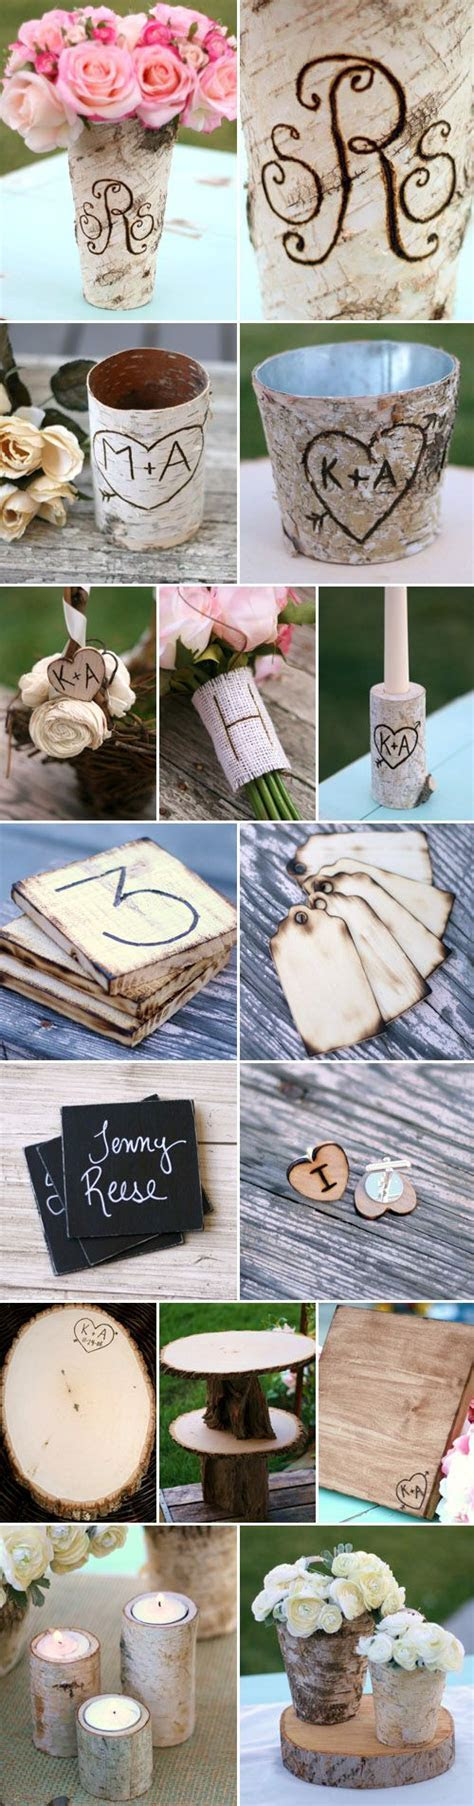 17 Best images about Lord of the rings Wedding on